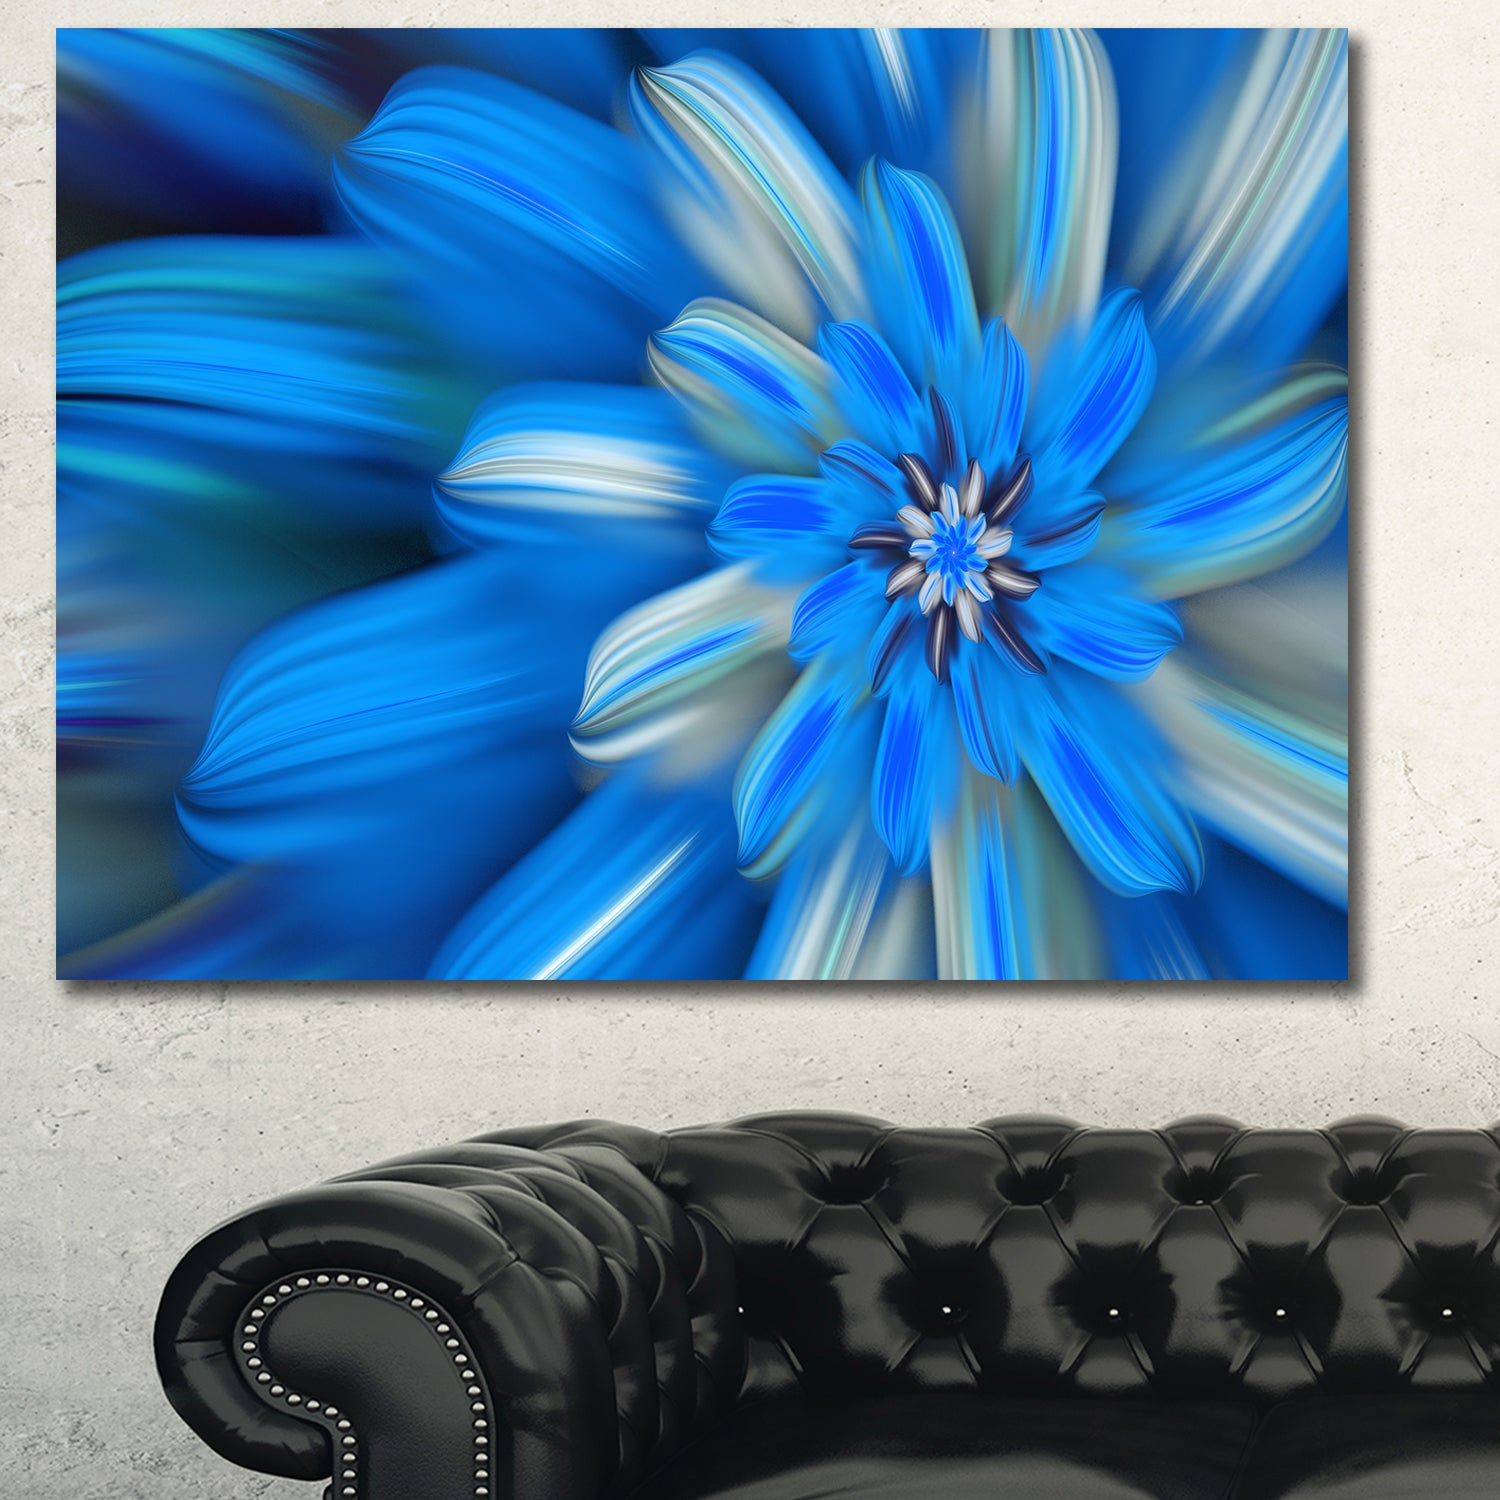 Shop designart exotic dance of blue flower petals extra large shop designart exotic dance of blue flower petals extra large floral canvas art print on sale free shipping on orders over 45 overstock izmirmasajfo